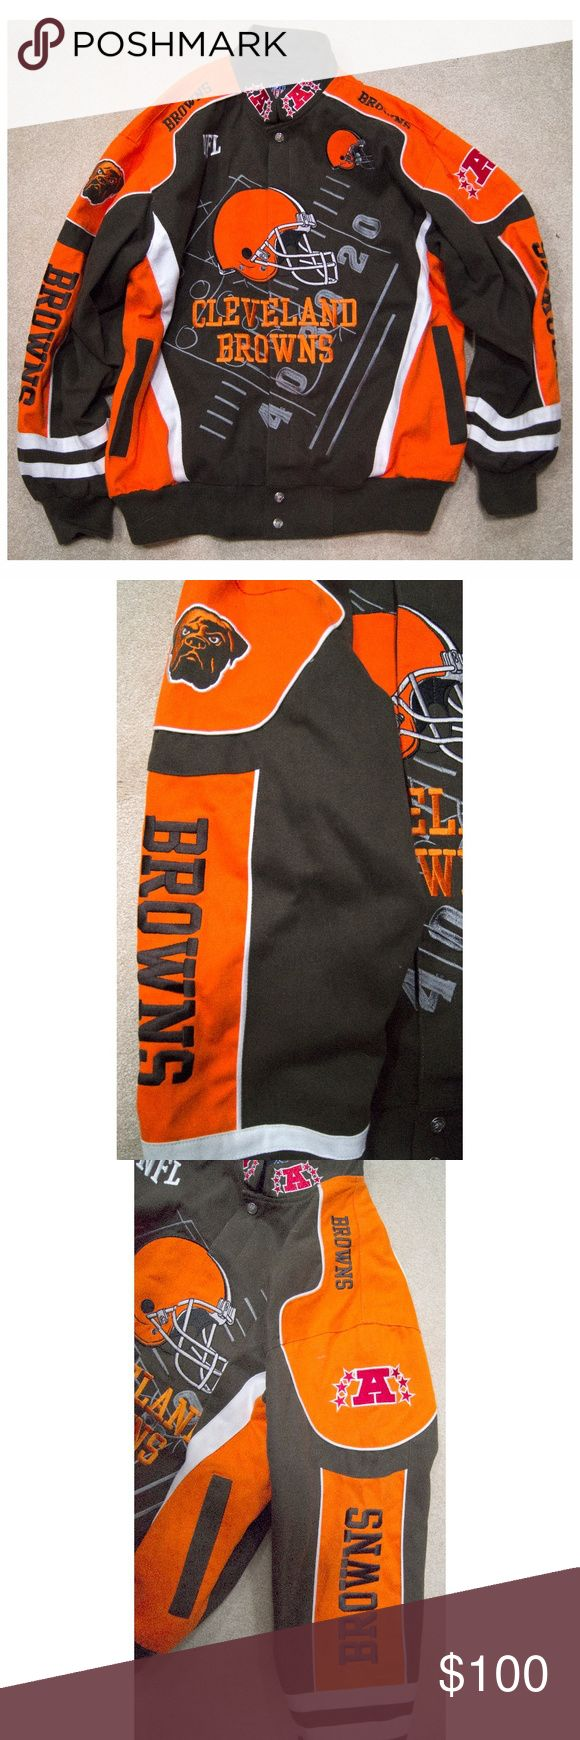 NFL BROWNS **NWOT** Football Heavy Weight Jacket Our favorite football team! Go Dawgs. Ha. We're more into the Indians, so selling this jacket which literally has never been worn we just took the tag off. Feel free to make an offer. NFL Jackets & Coats Bomber & Varsity